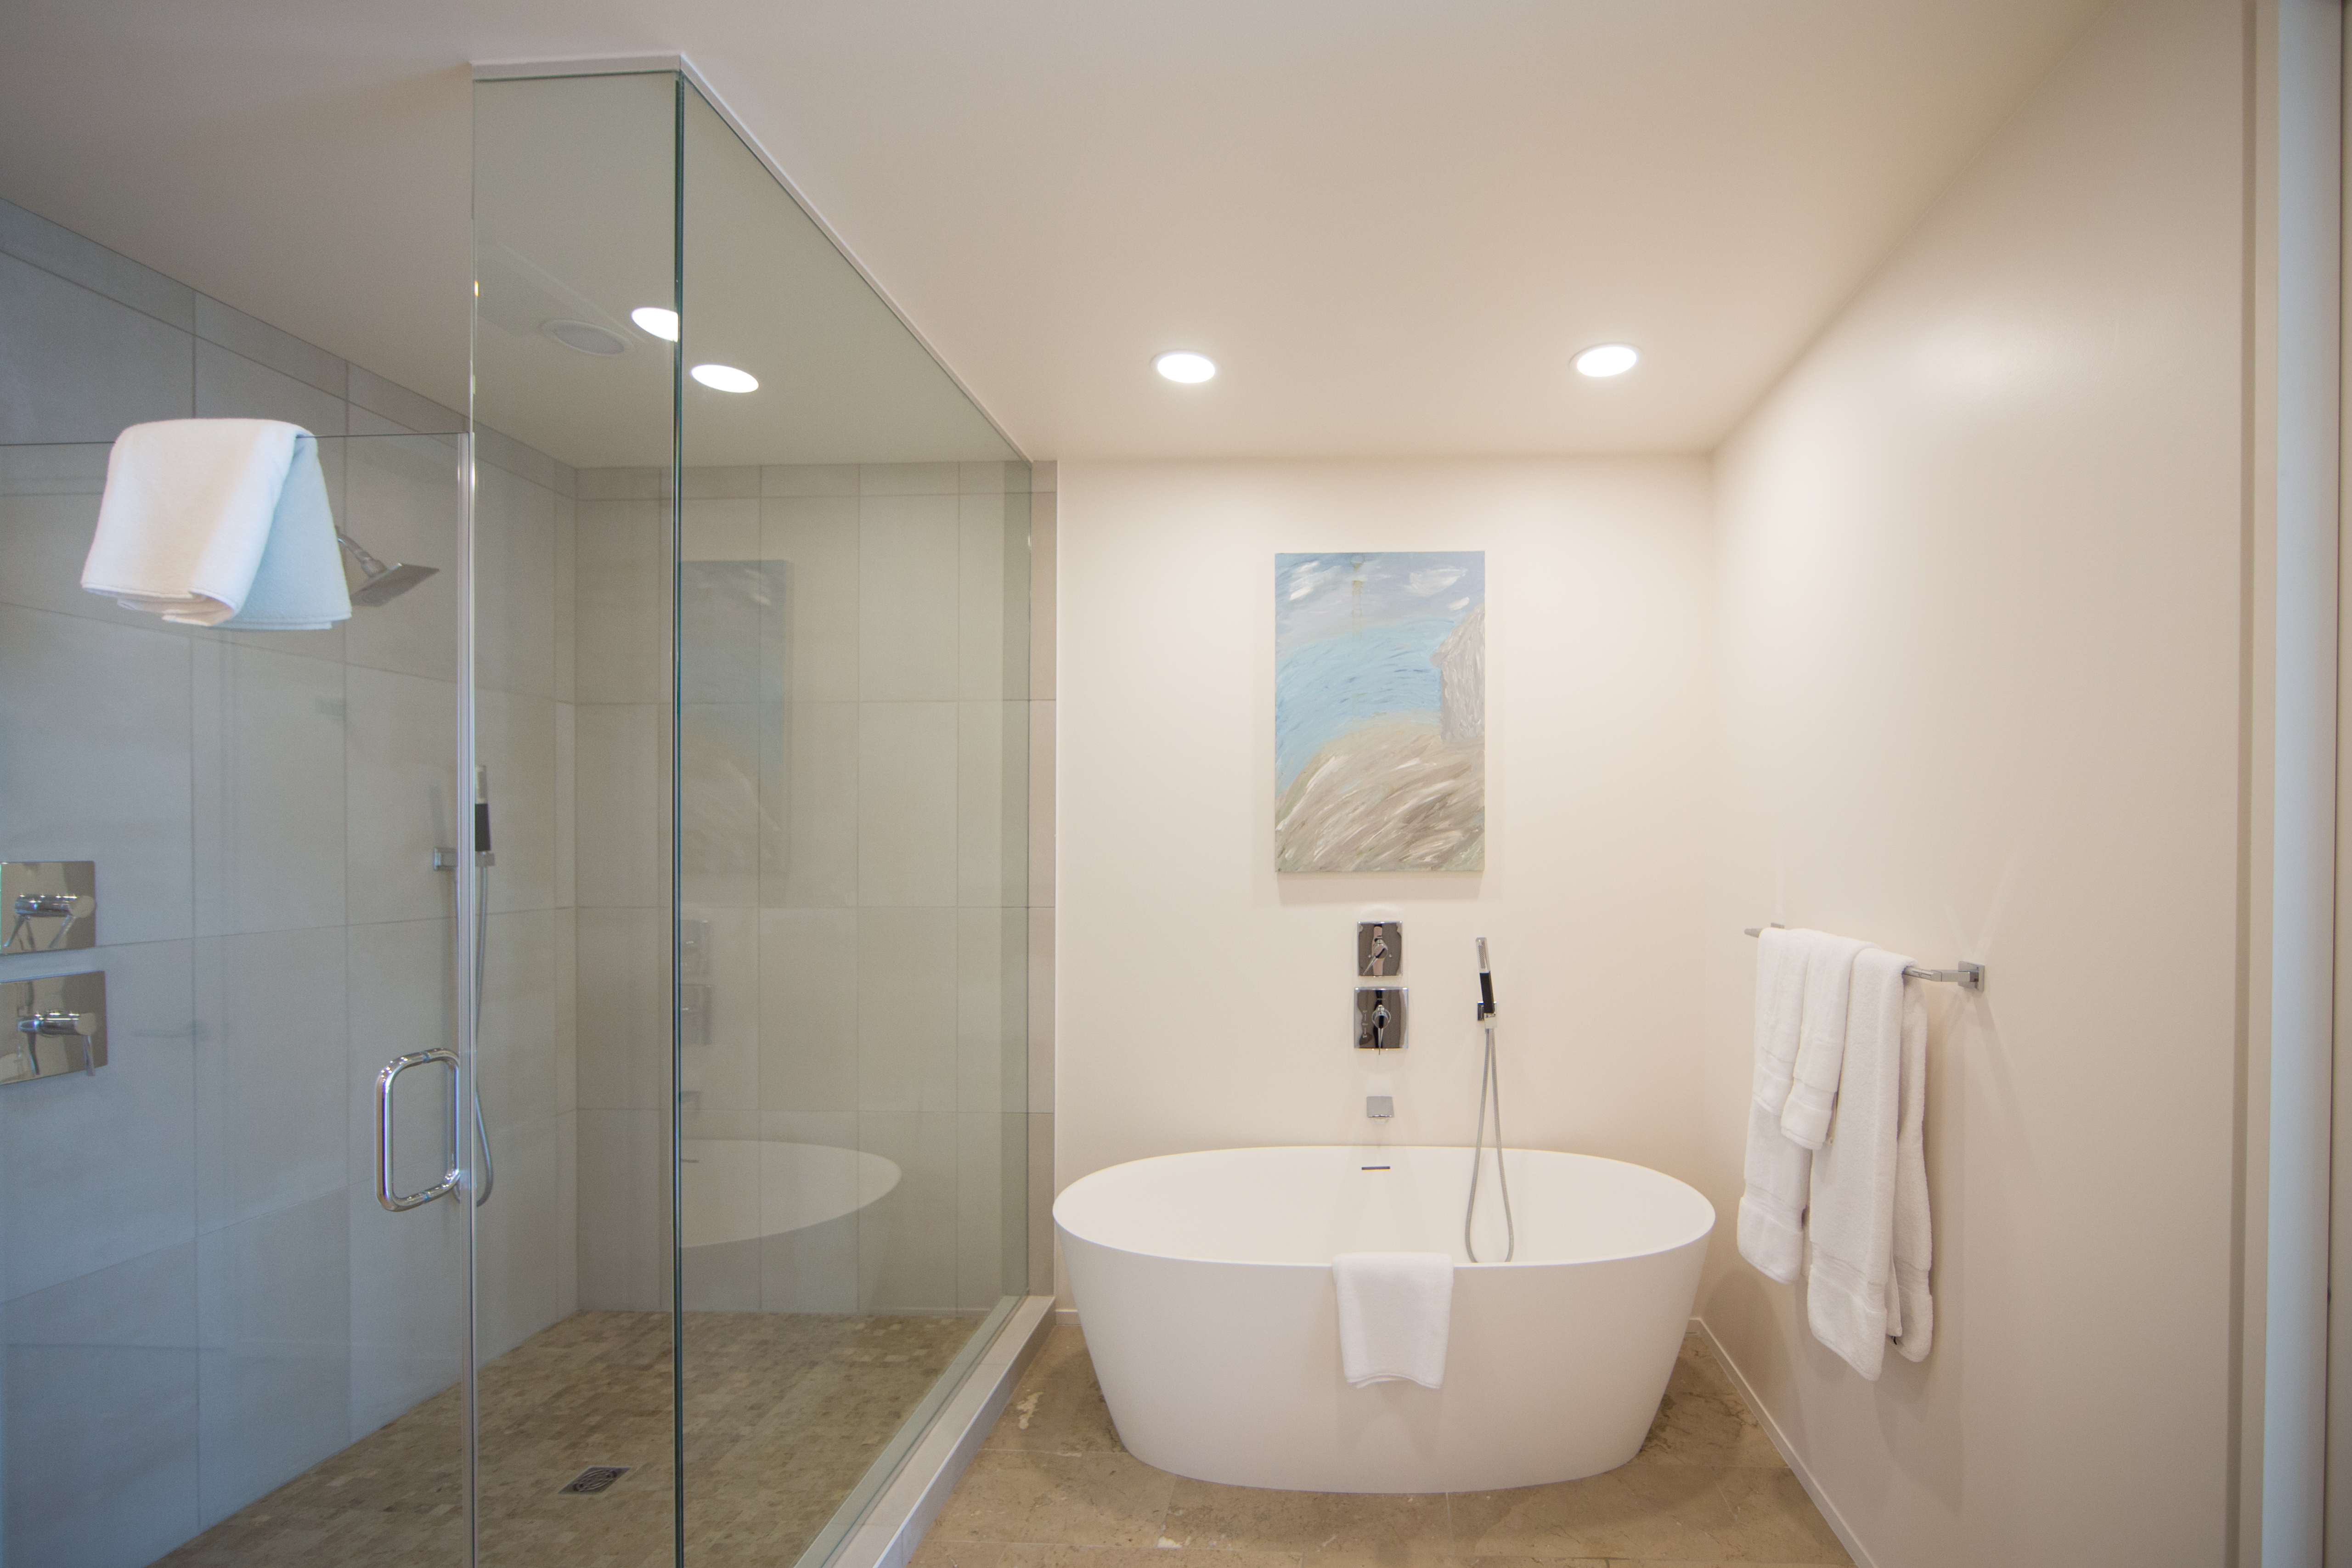 Gorgeous soaking tub and glass shower